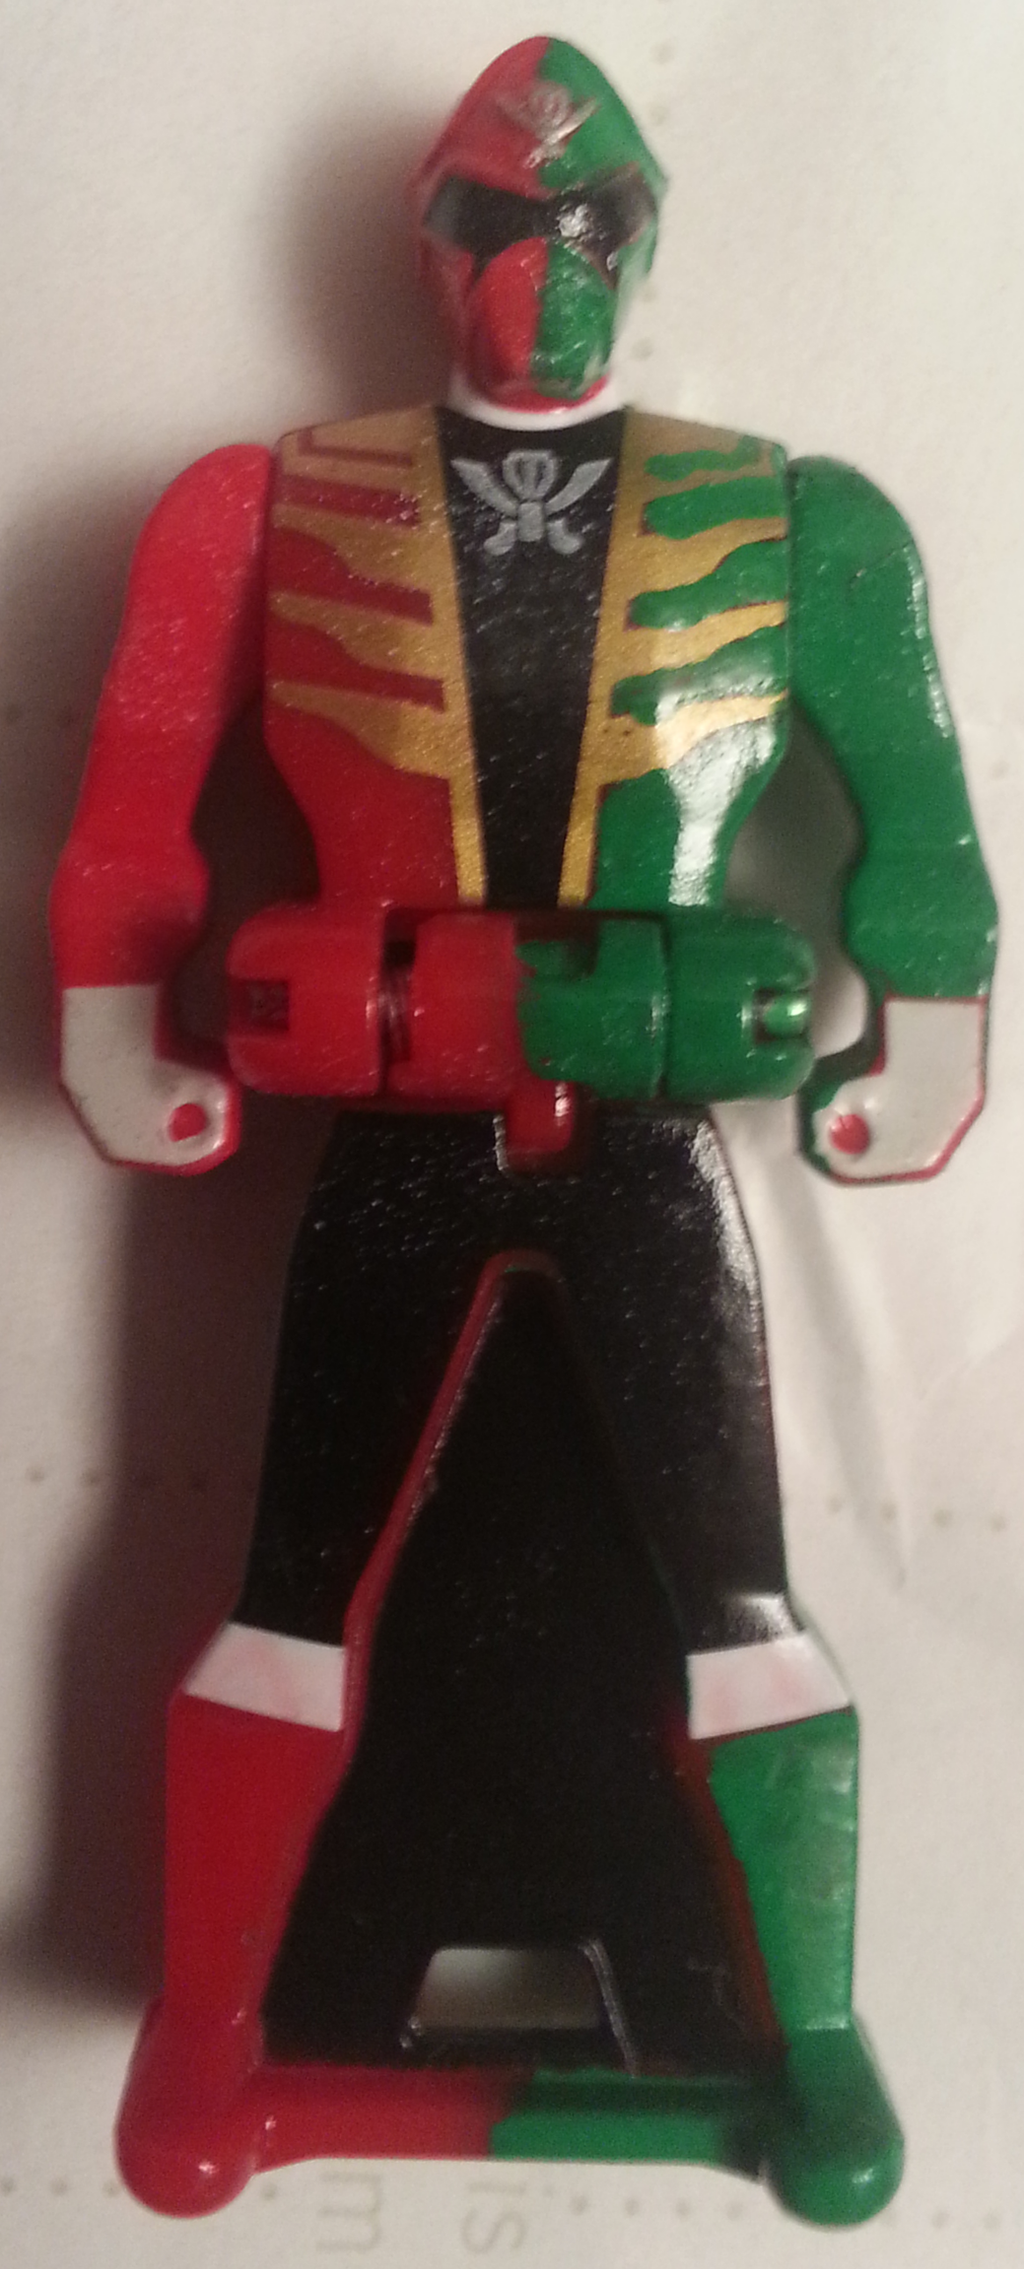 Gokai Christmas Super Megaforce Key by D-Rock92 on DeviantArt